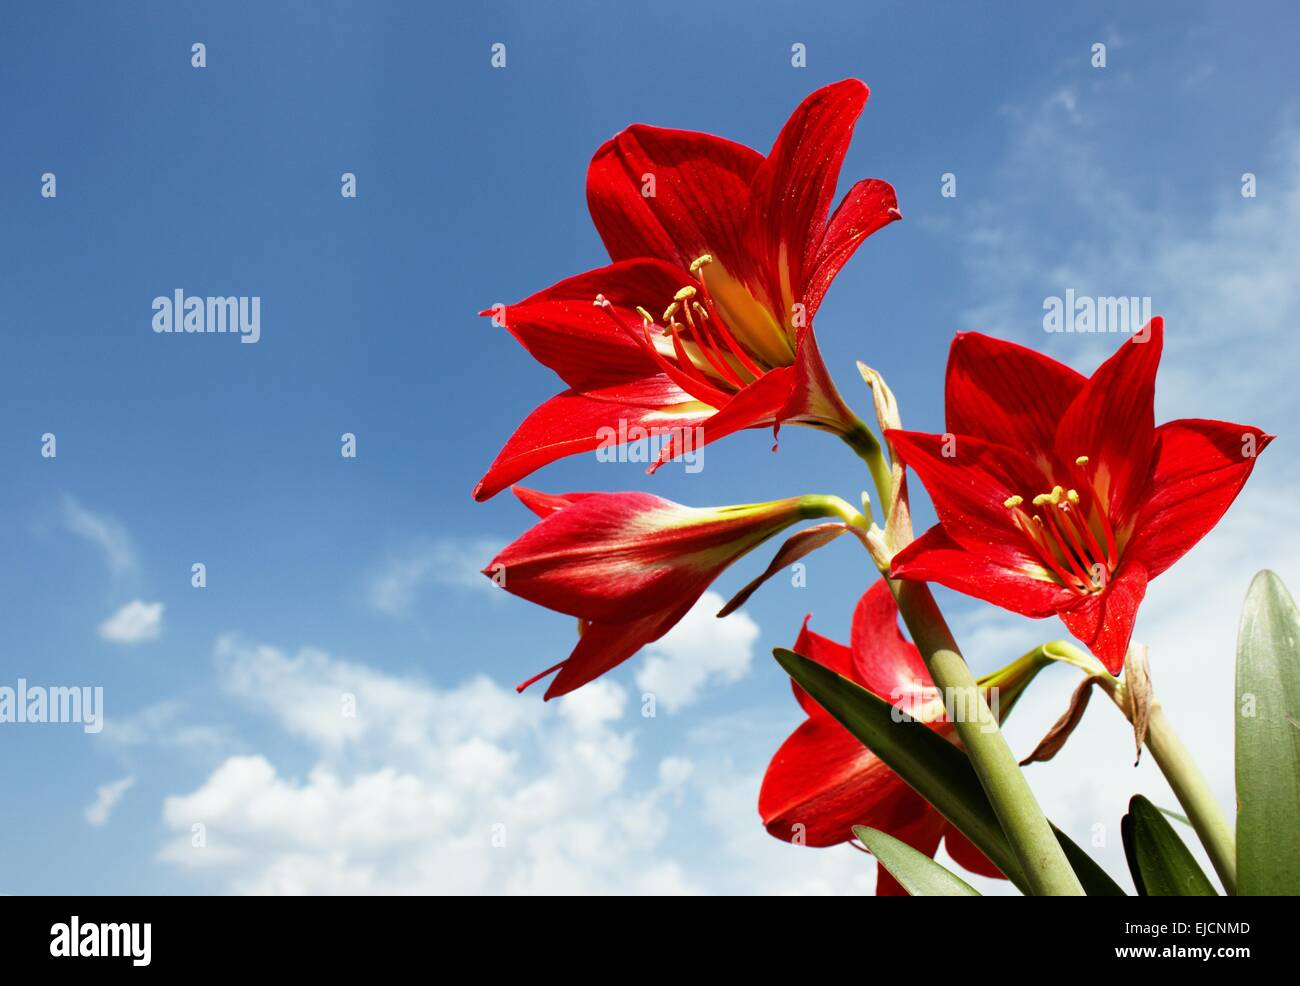 Big Red Amaryllis Lily Flowers against Sky - Stock Image